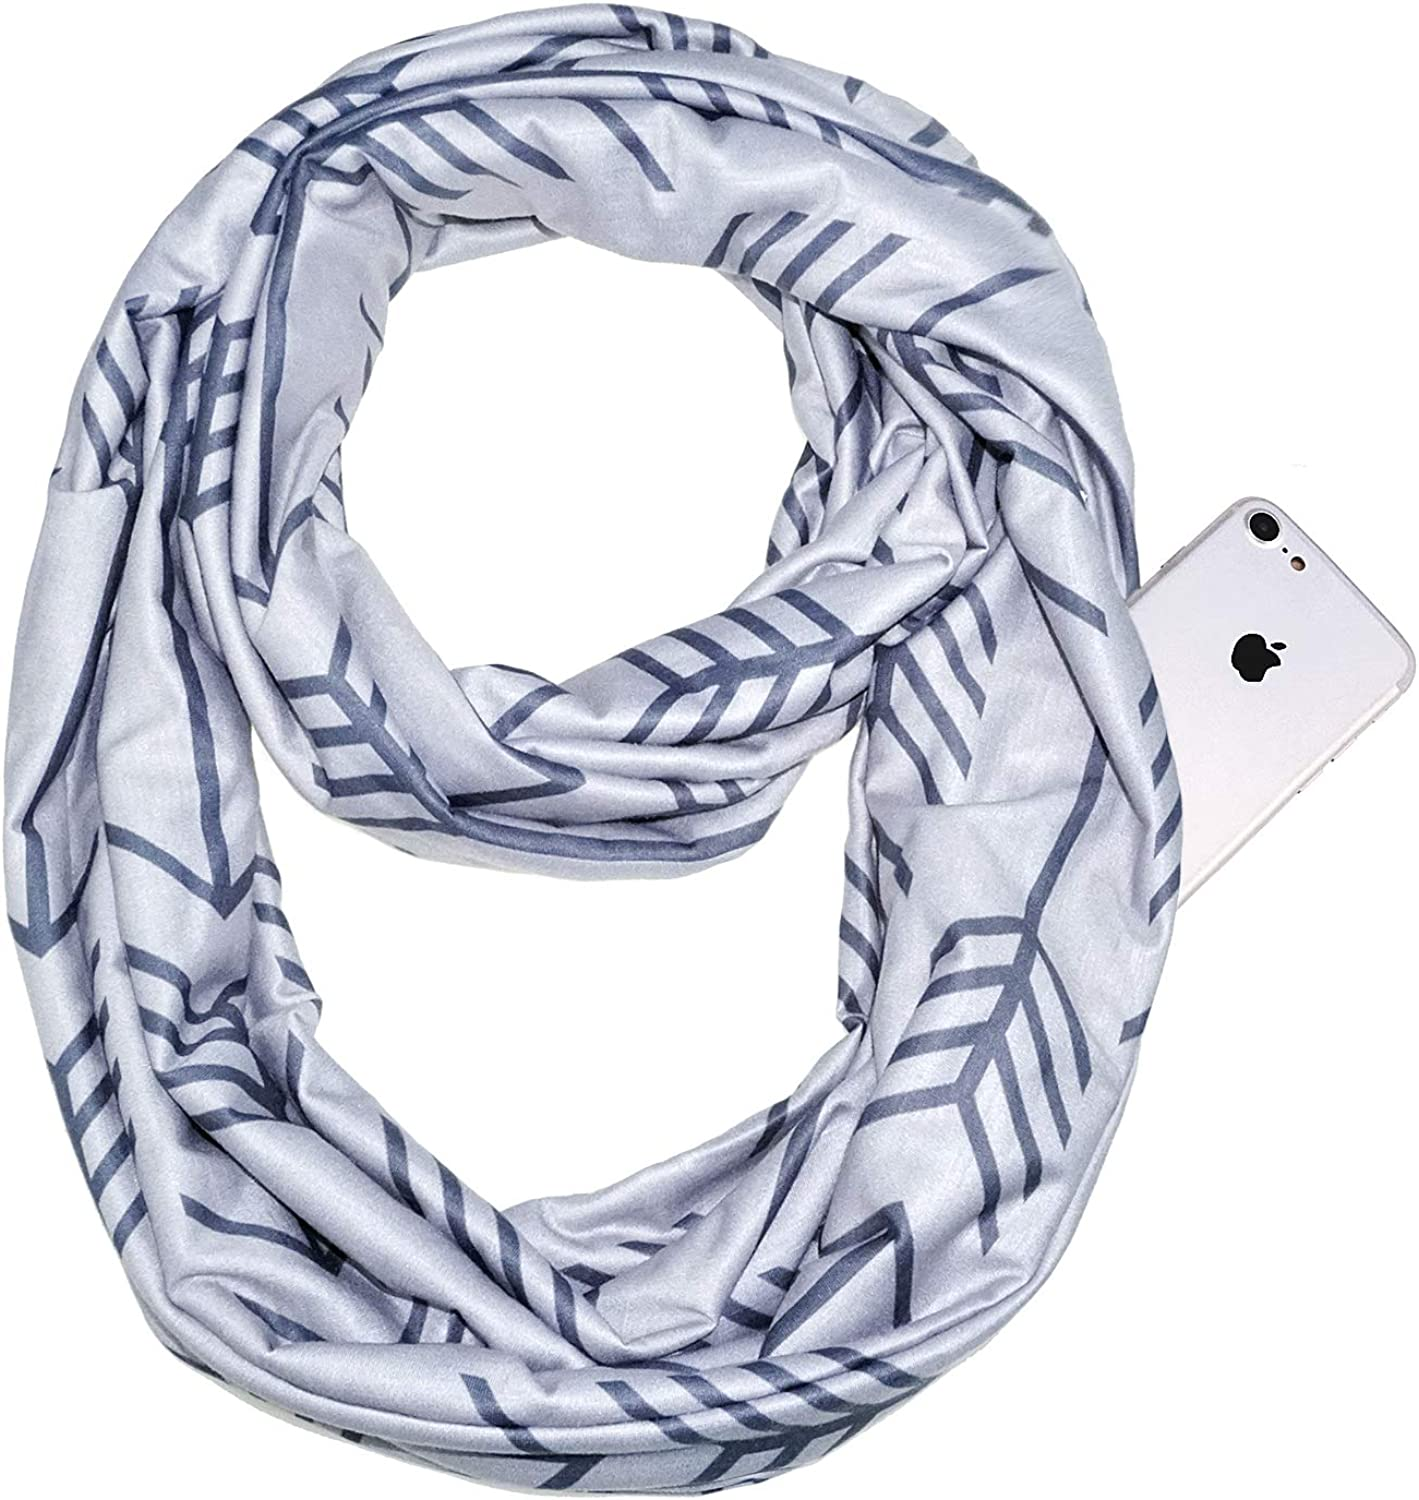 Glamorstar Fashion Infinity Scarf Wrap Scarf Fish Bone Pattern Travel Scarf with Zipper Pocket